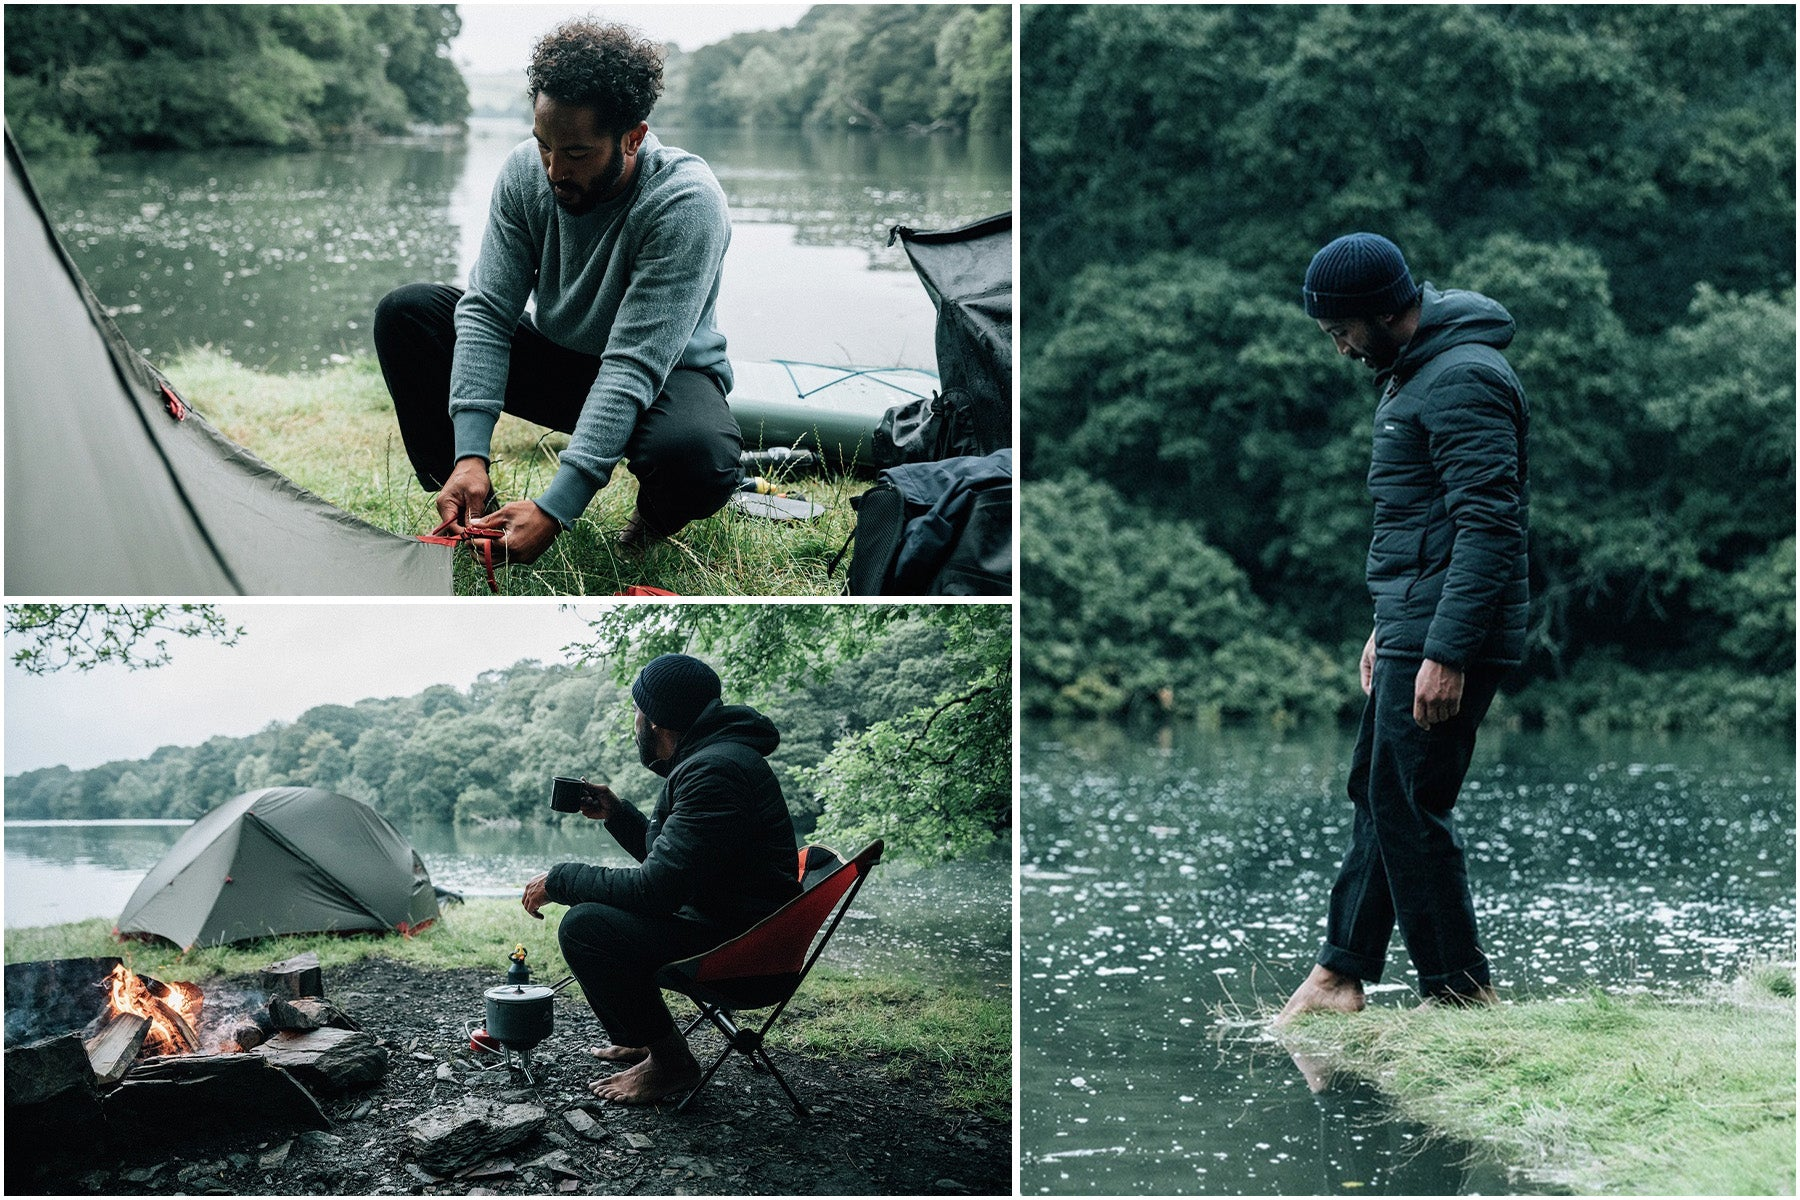 Sean White setting camp on the banks of the river wearing the Nimbus jacket